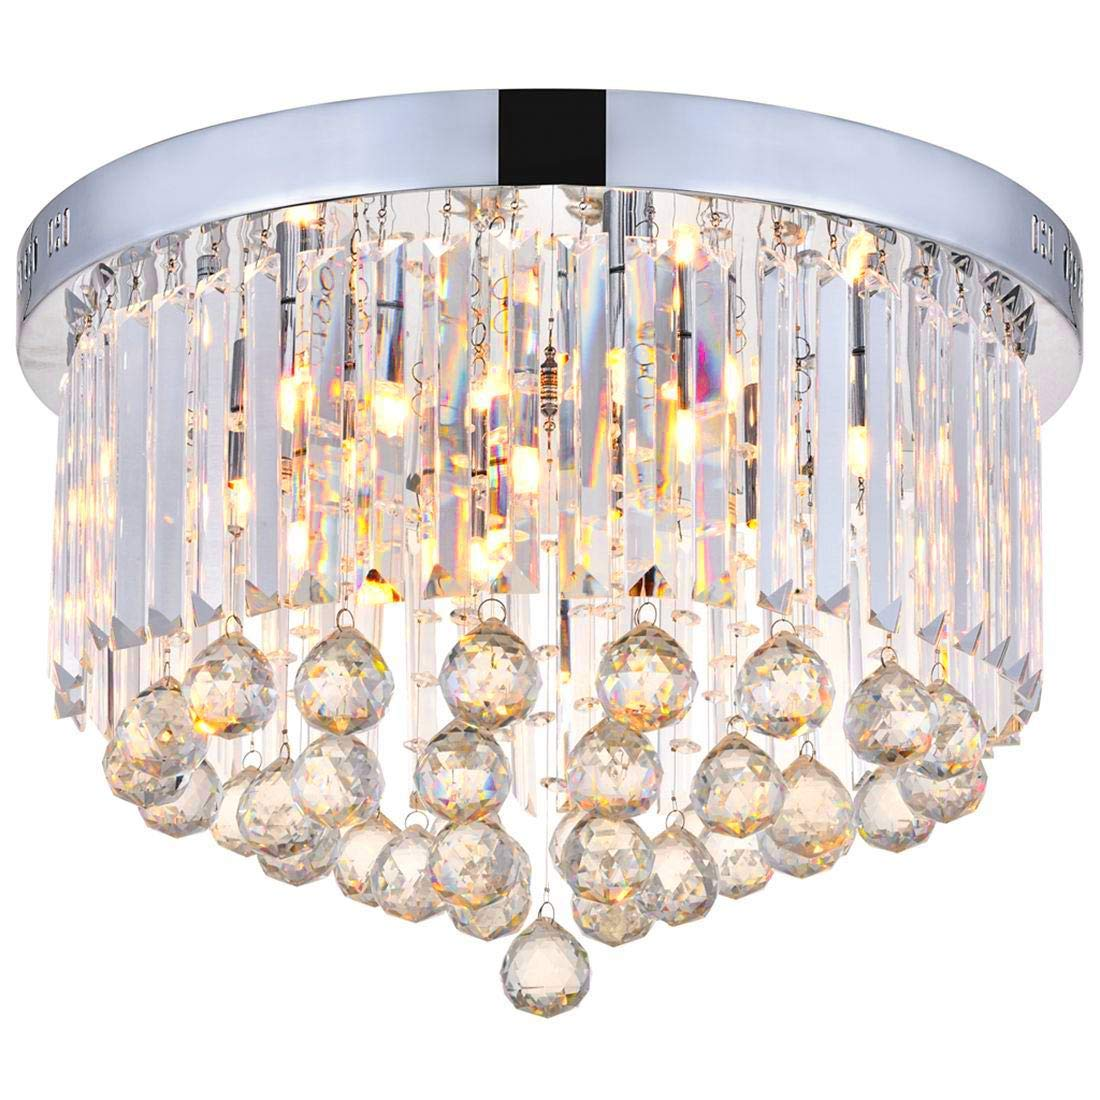 Get Quotations Modern Clear Crystal Raindrop Round Chandelier Lighting Flush Mount Led Ceiling Light Fixture Lamp For Dining